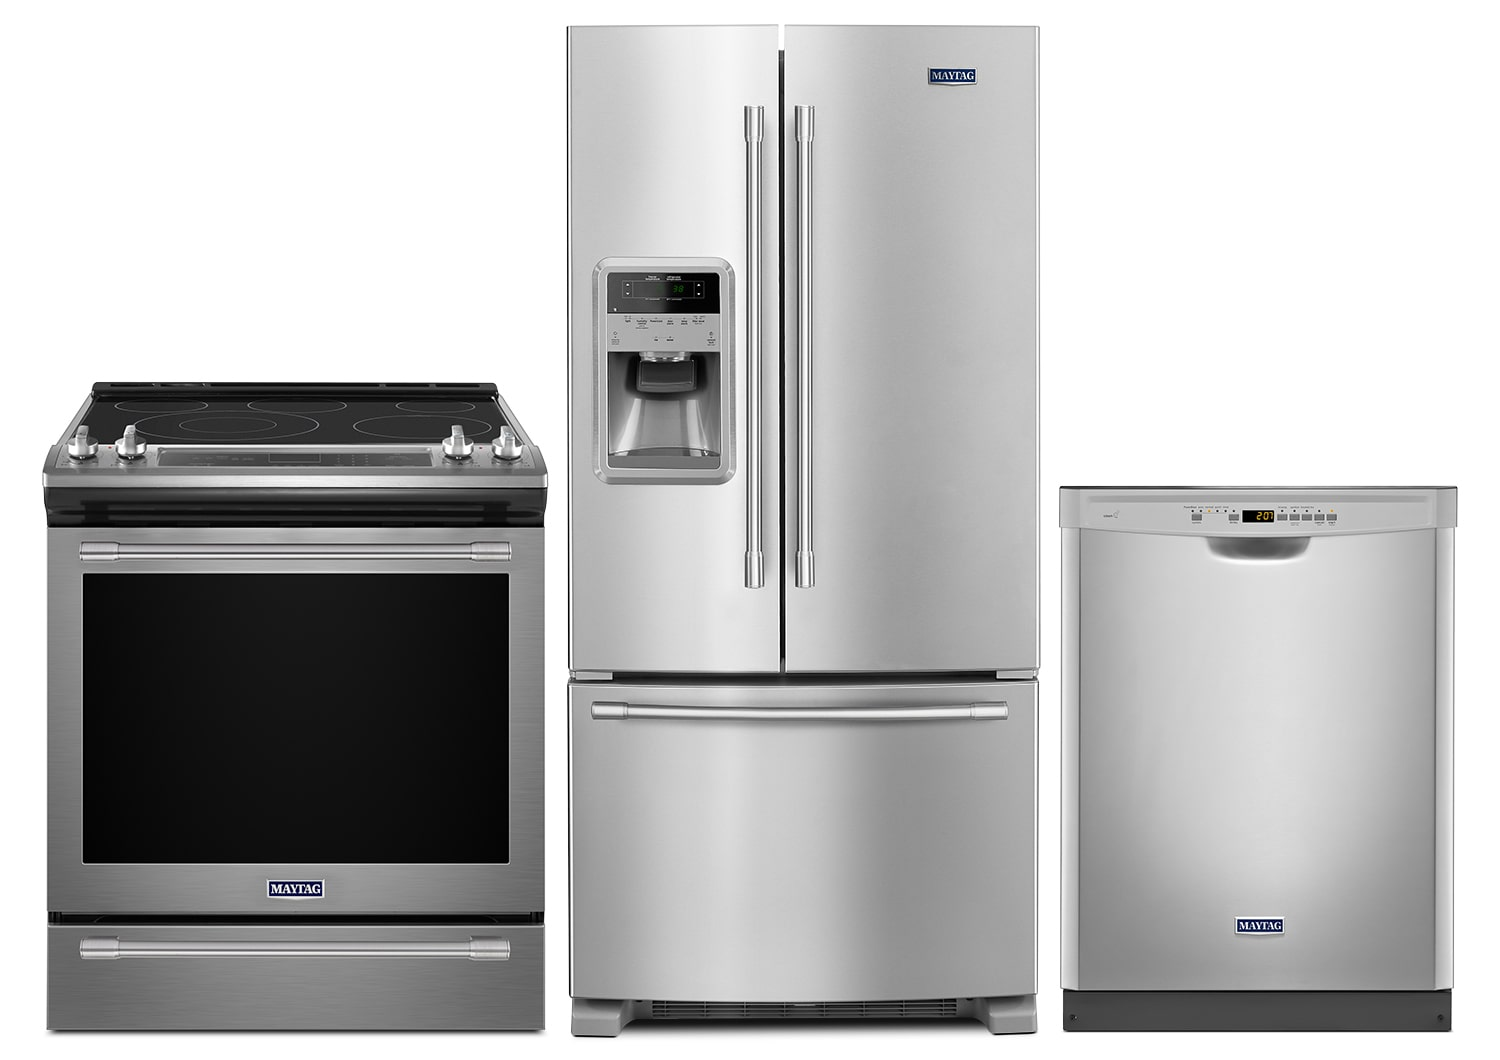 Clean-Up - Maytag 22 Cu. Ft. French-Door Refrigerator, 6.4 Cu. Ft. Electric Range and Built-In Dishwasher